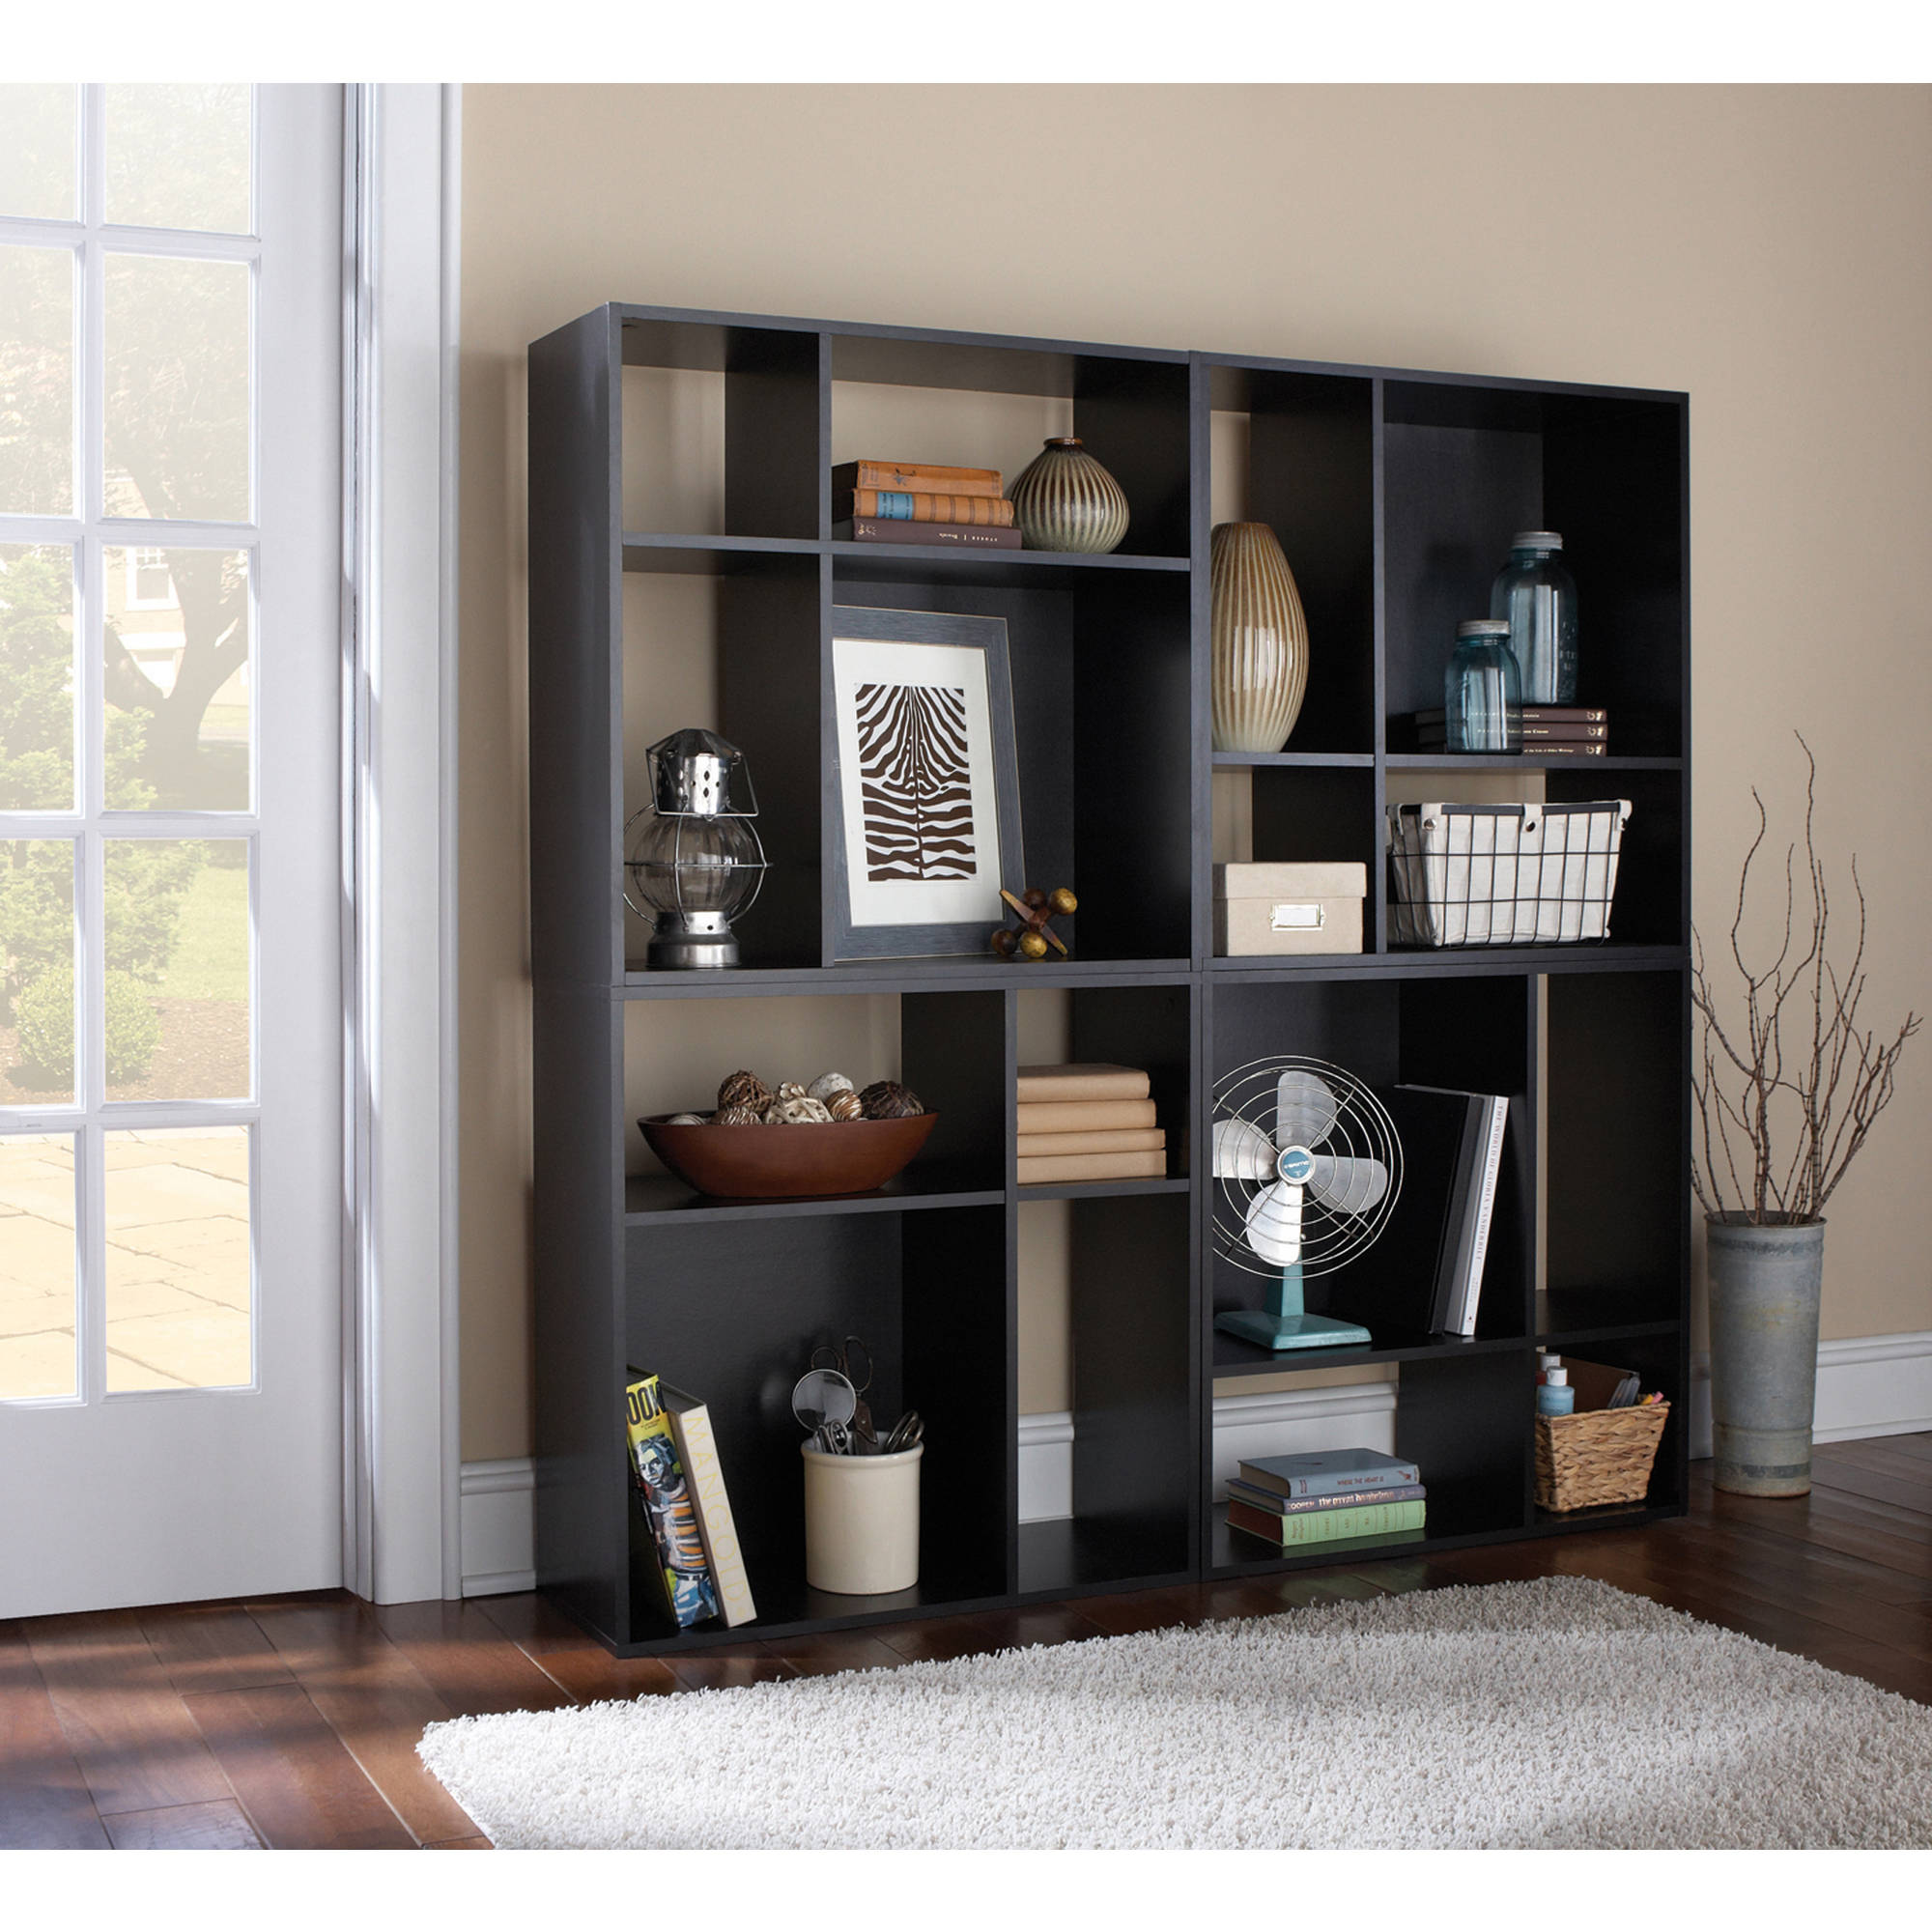 wall tier cabinet shelf organizer home closet bookcase new corner itm cube storage cubes